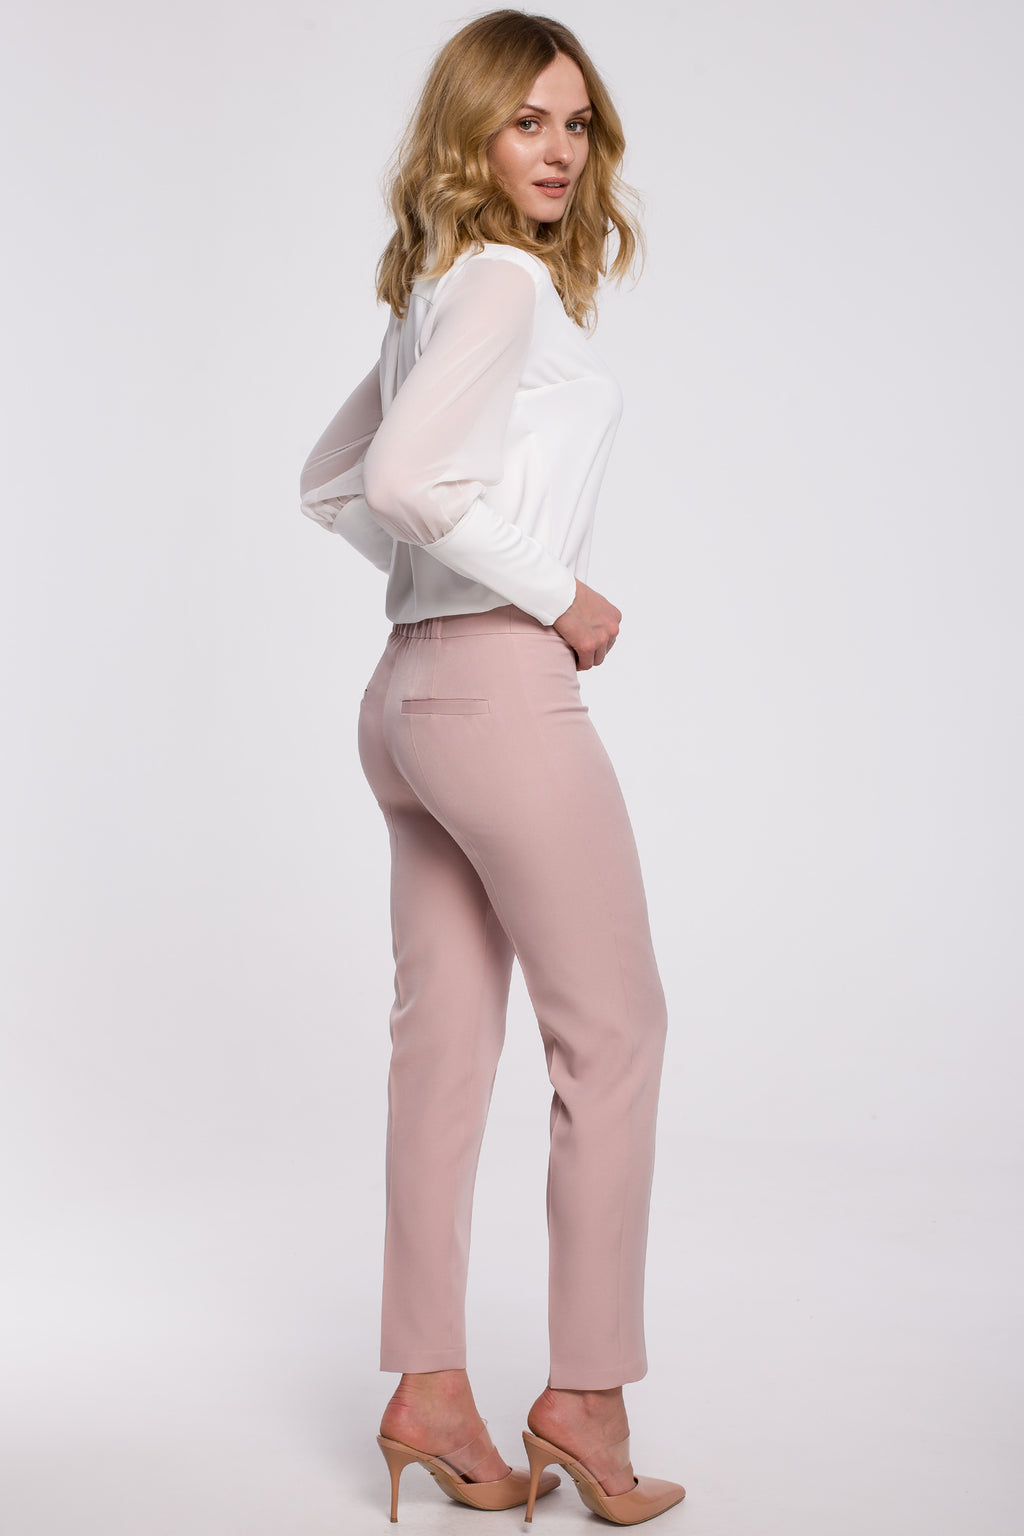 Powder Pink Slim Fit Trousers - So Chic Boutique